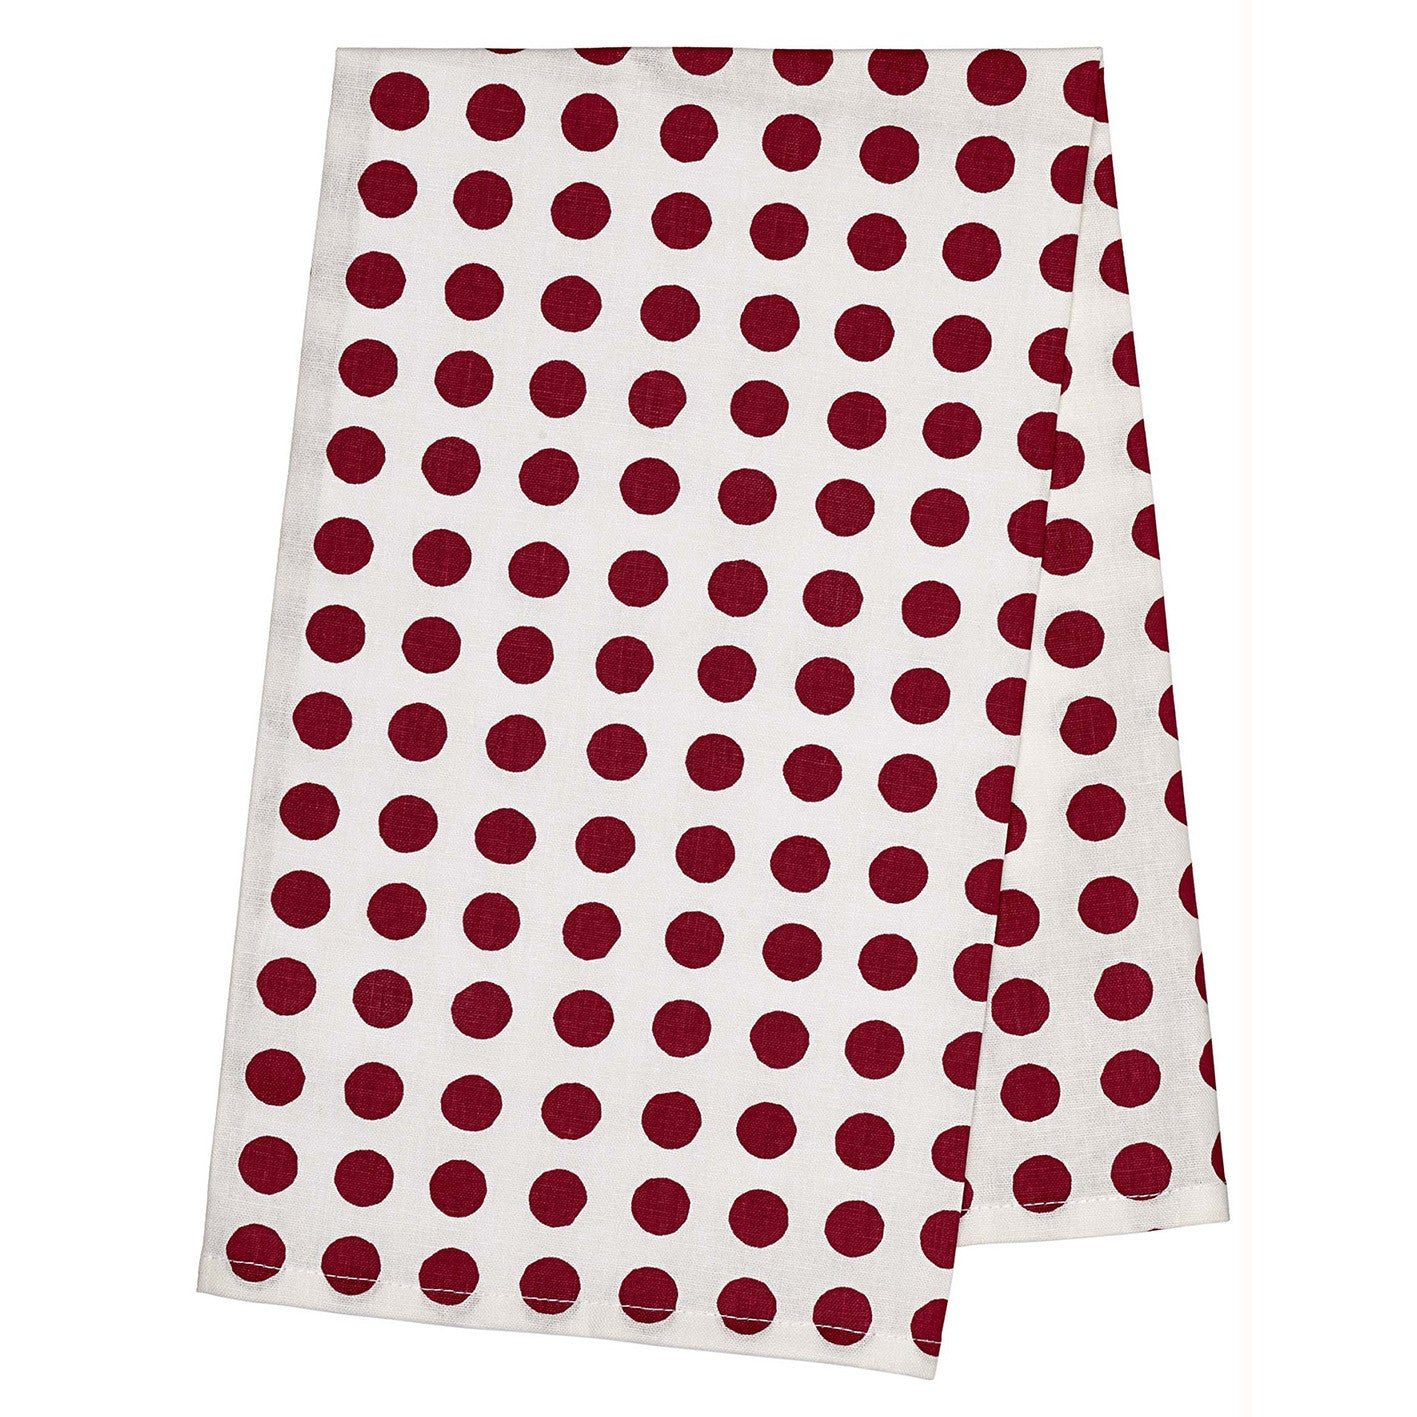 London Tea Towel - Vermilion Red